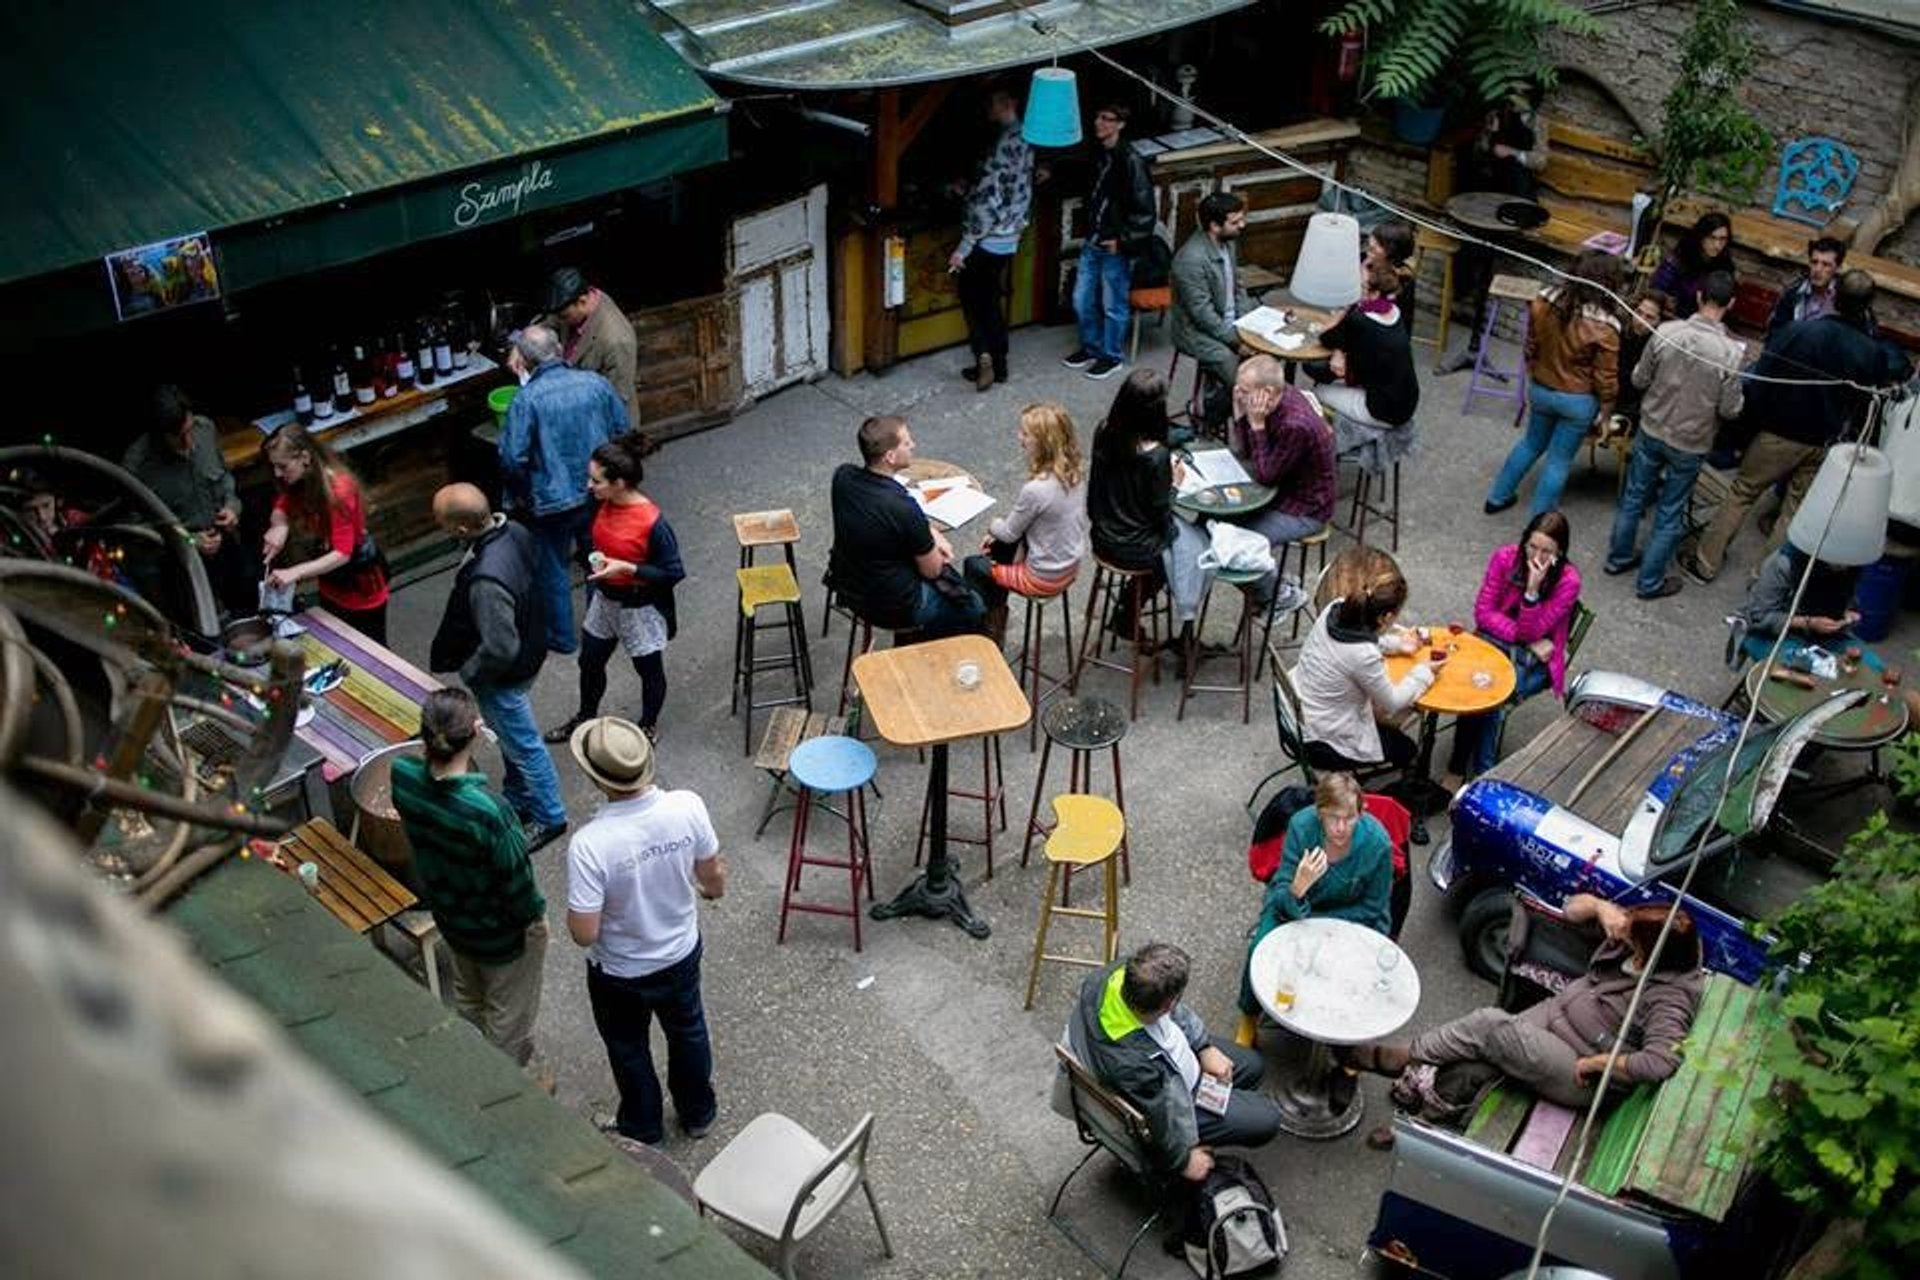 Szimpla kert courtyard from above 2020